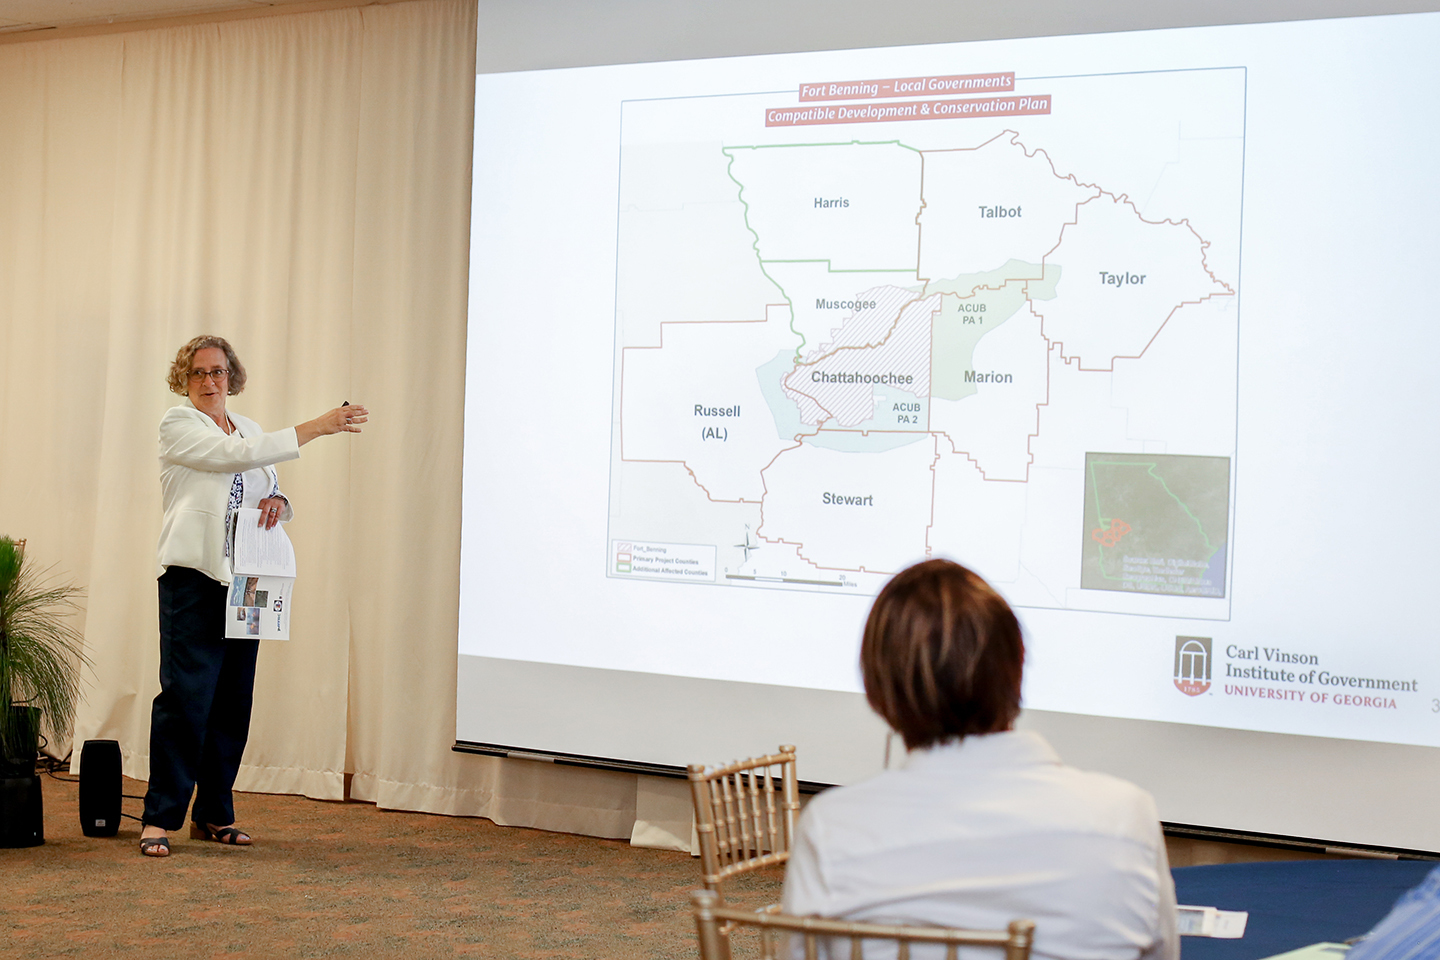 Saralyn Stafford speaks in front of a projector screen showing the ACUB territory.